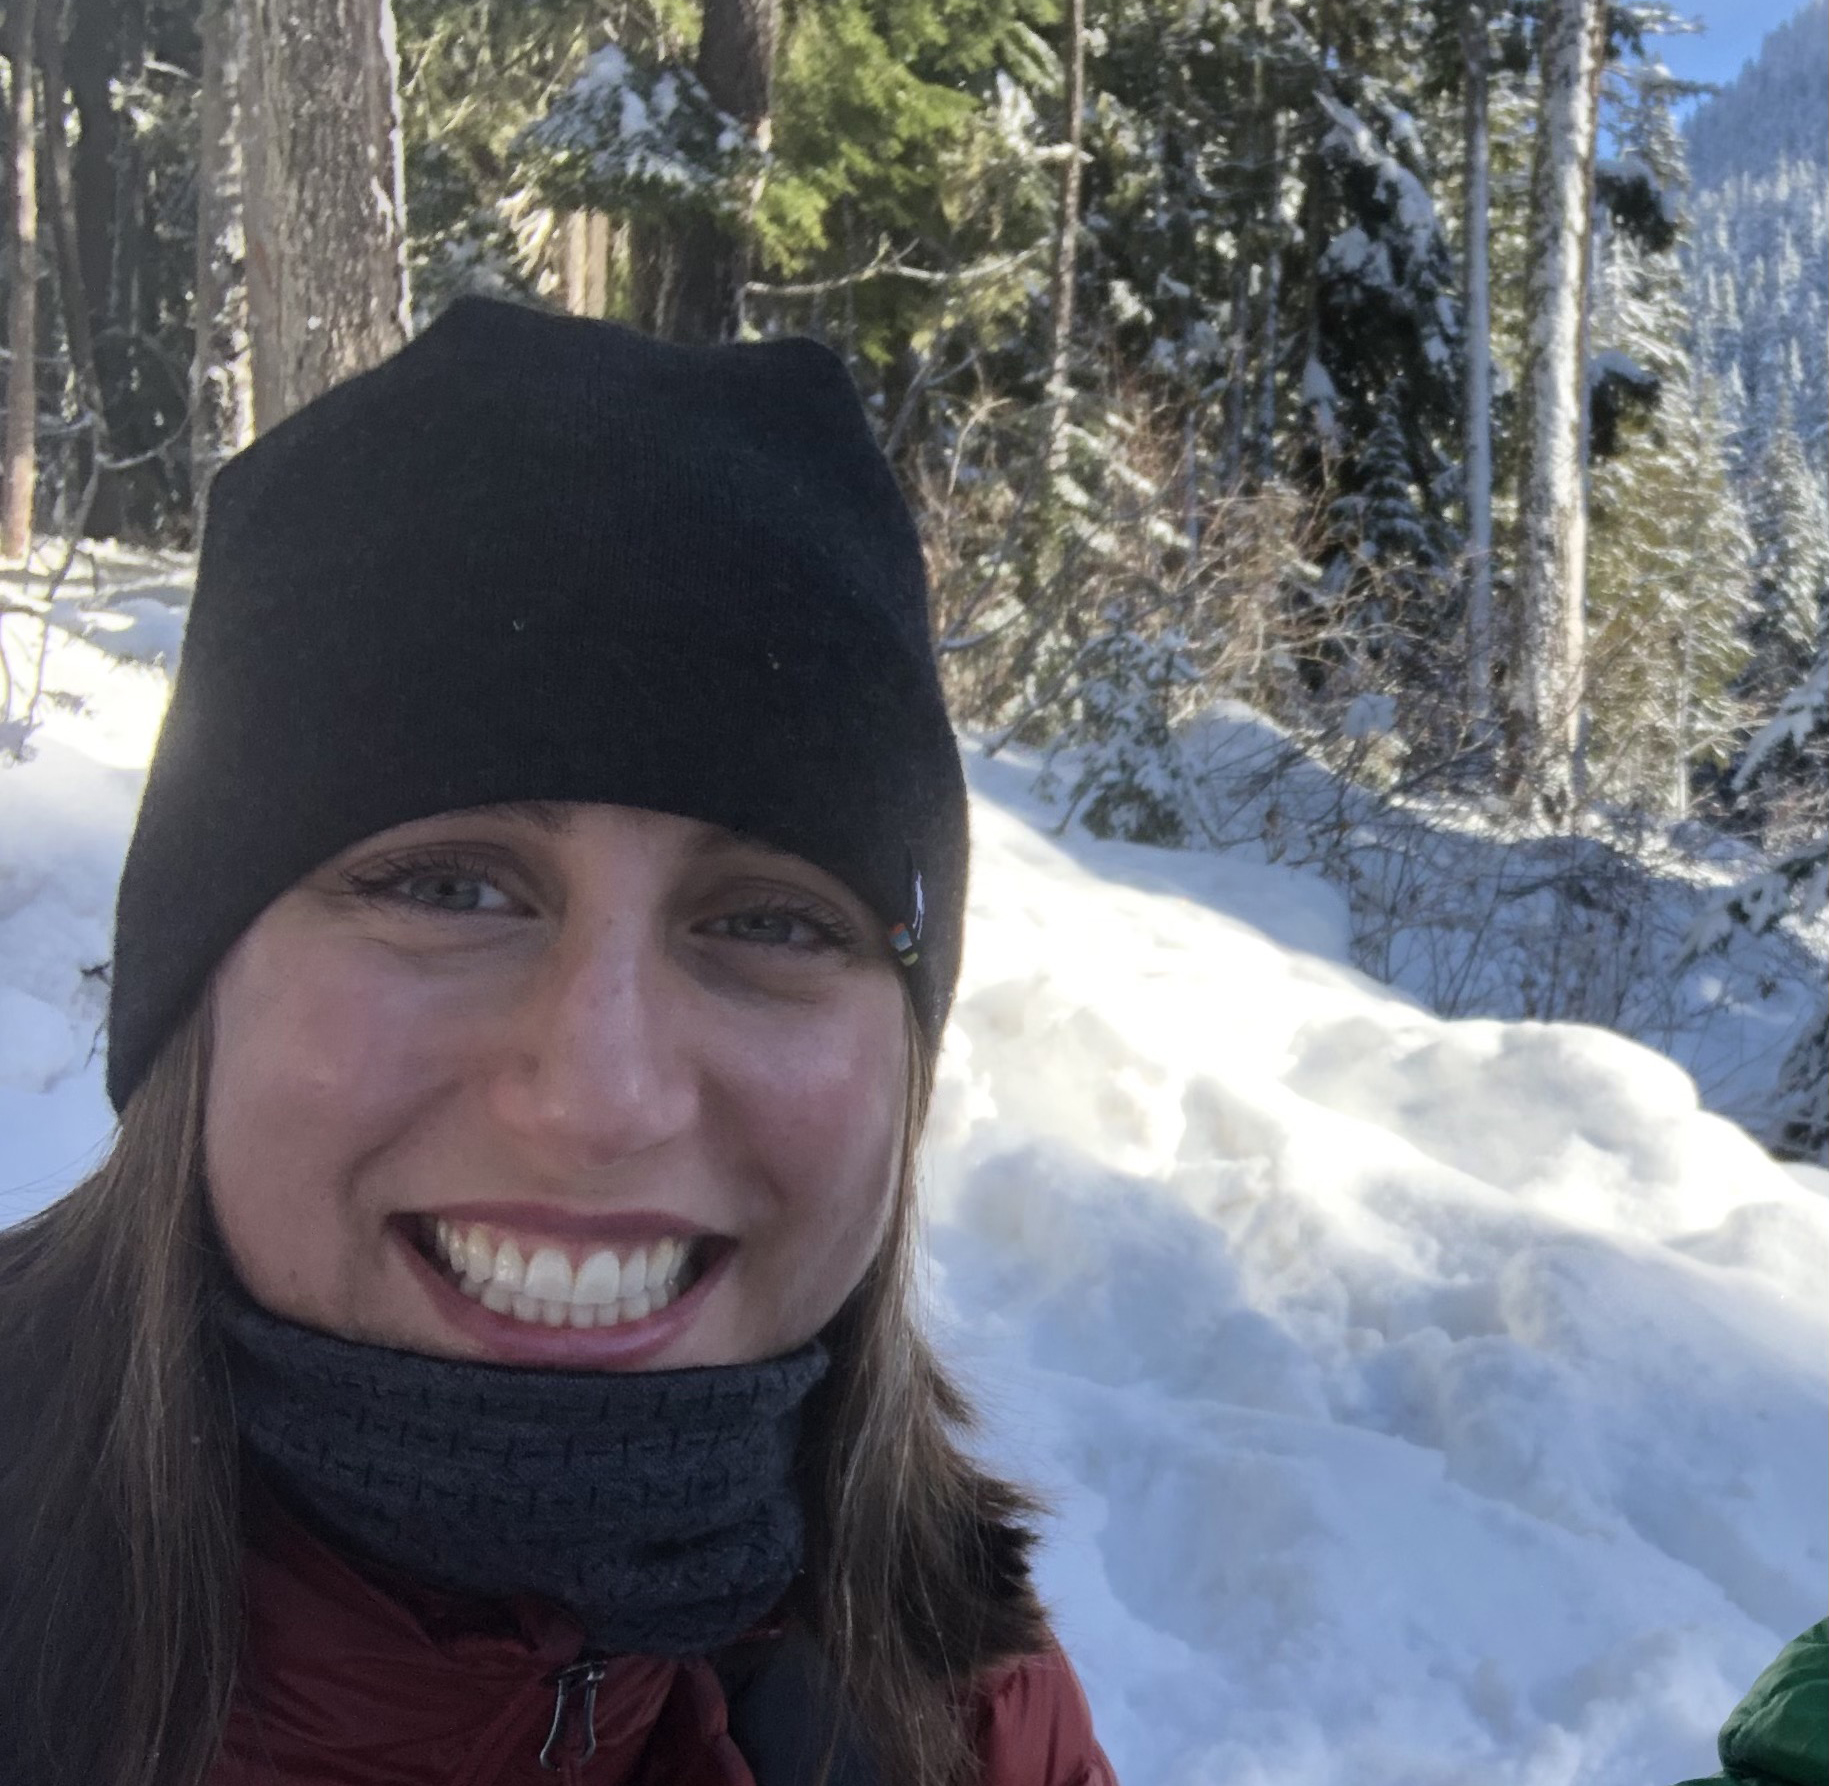 Leah Dobey, smiling for a selfie with snow in the background.